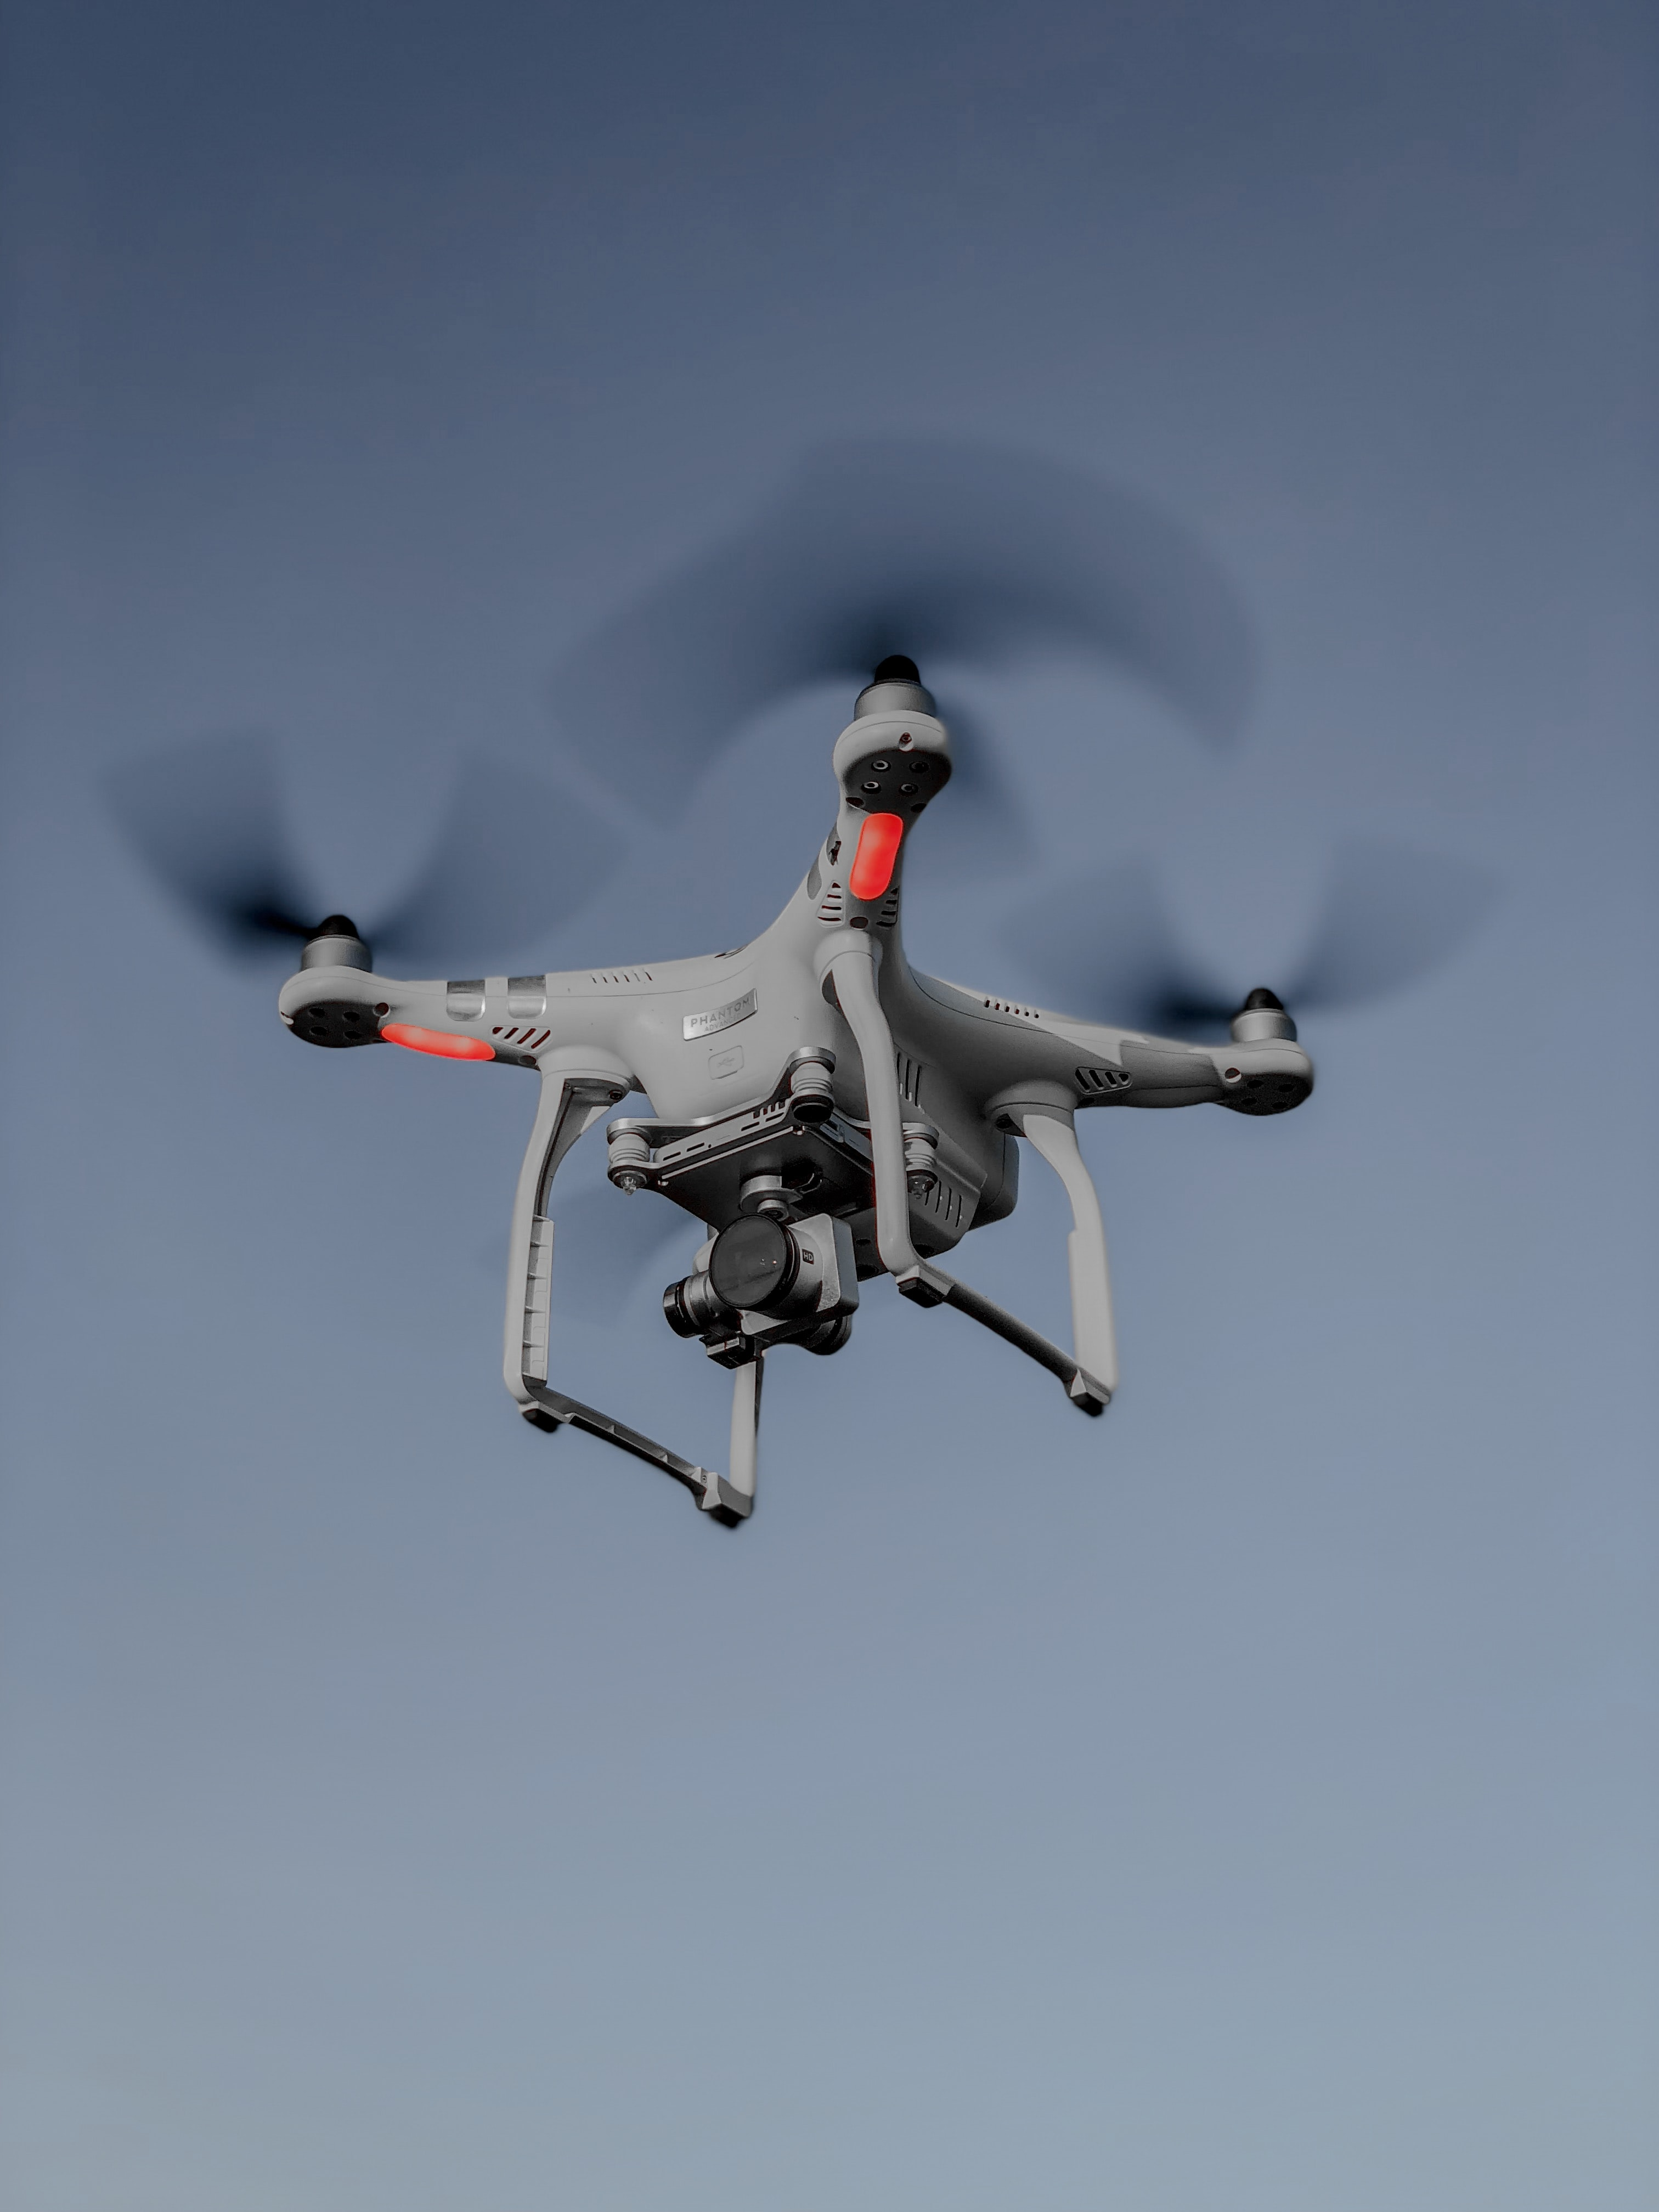 photo of flying white and red quadcopter drone